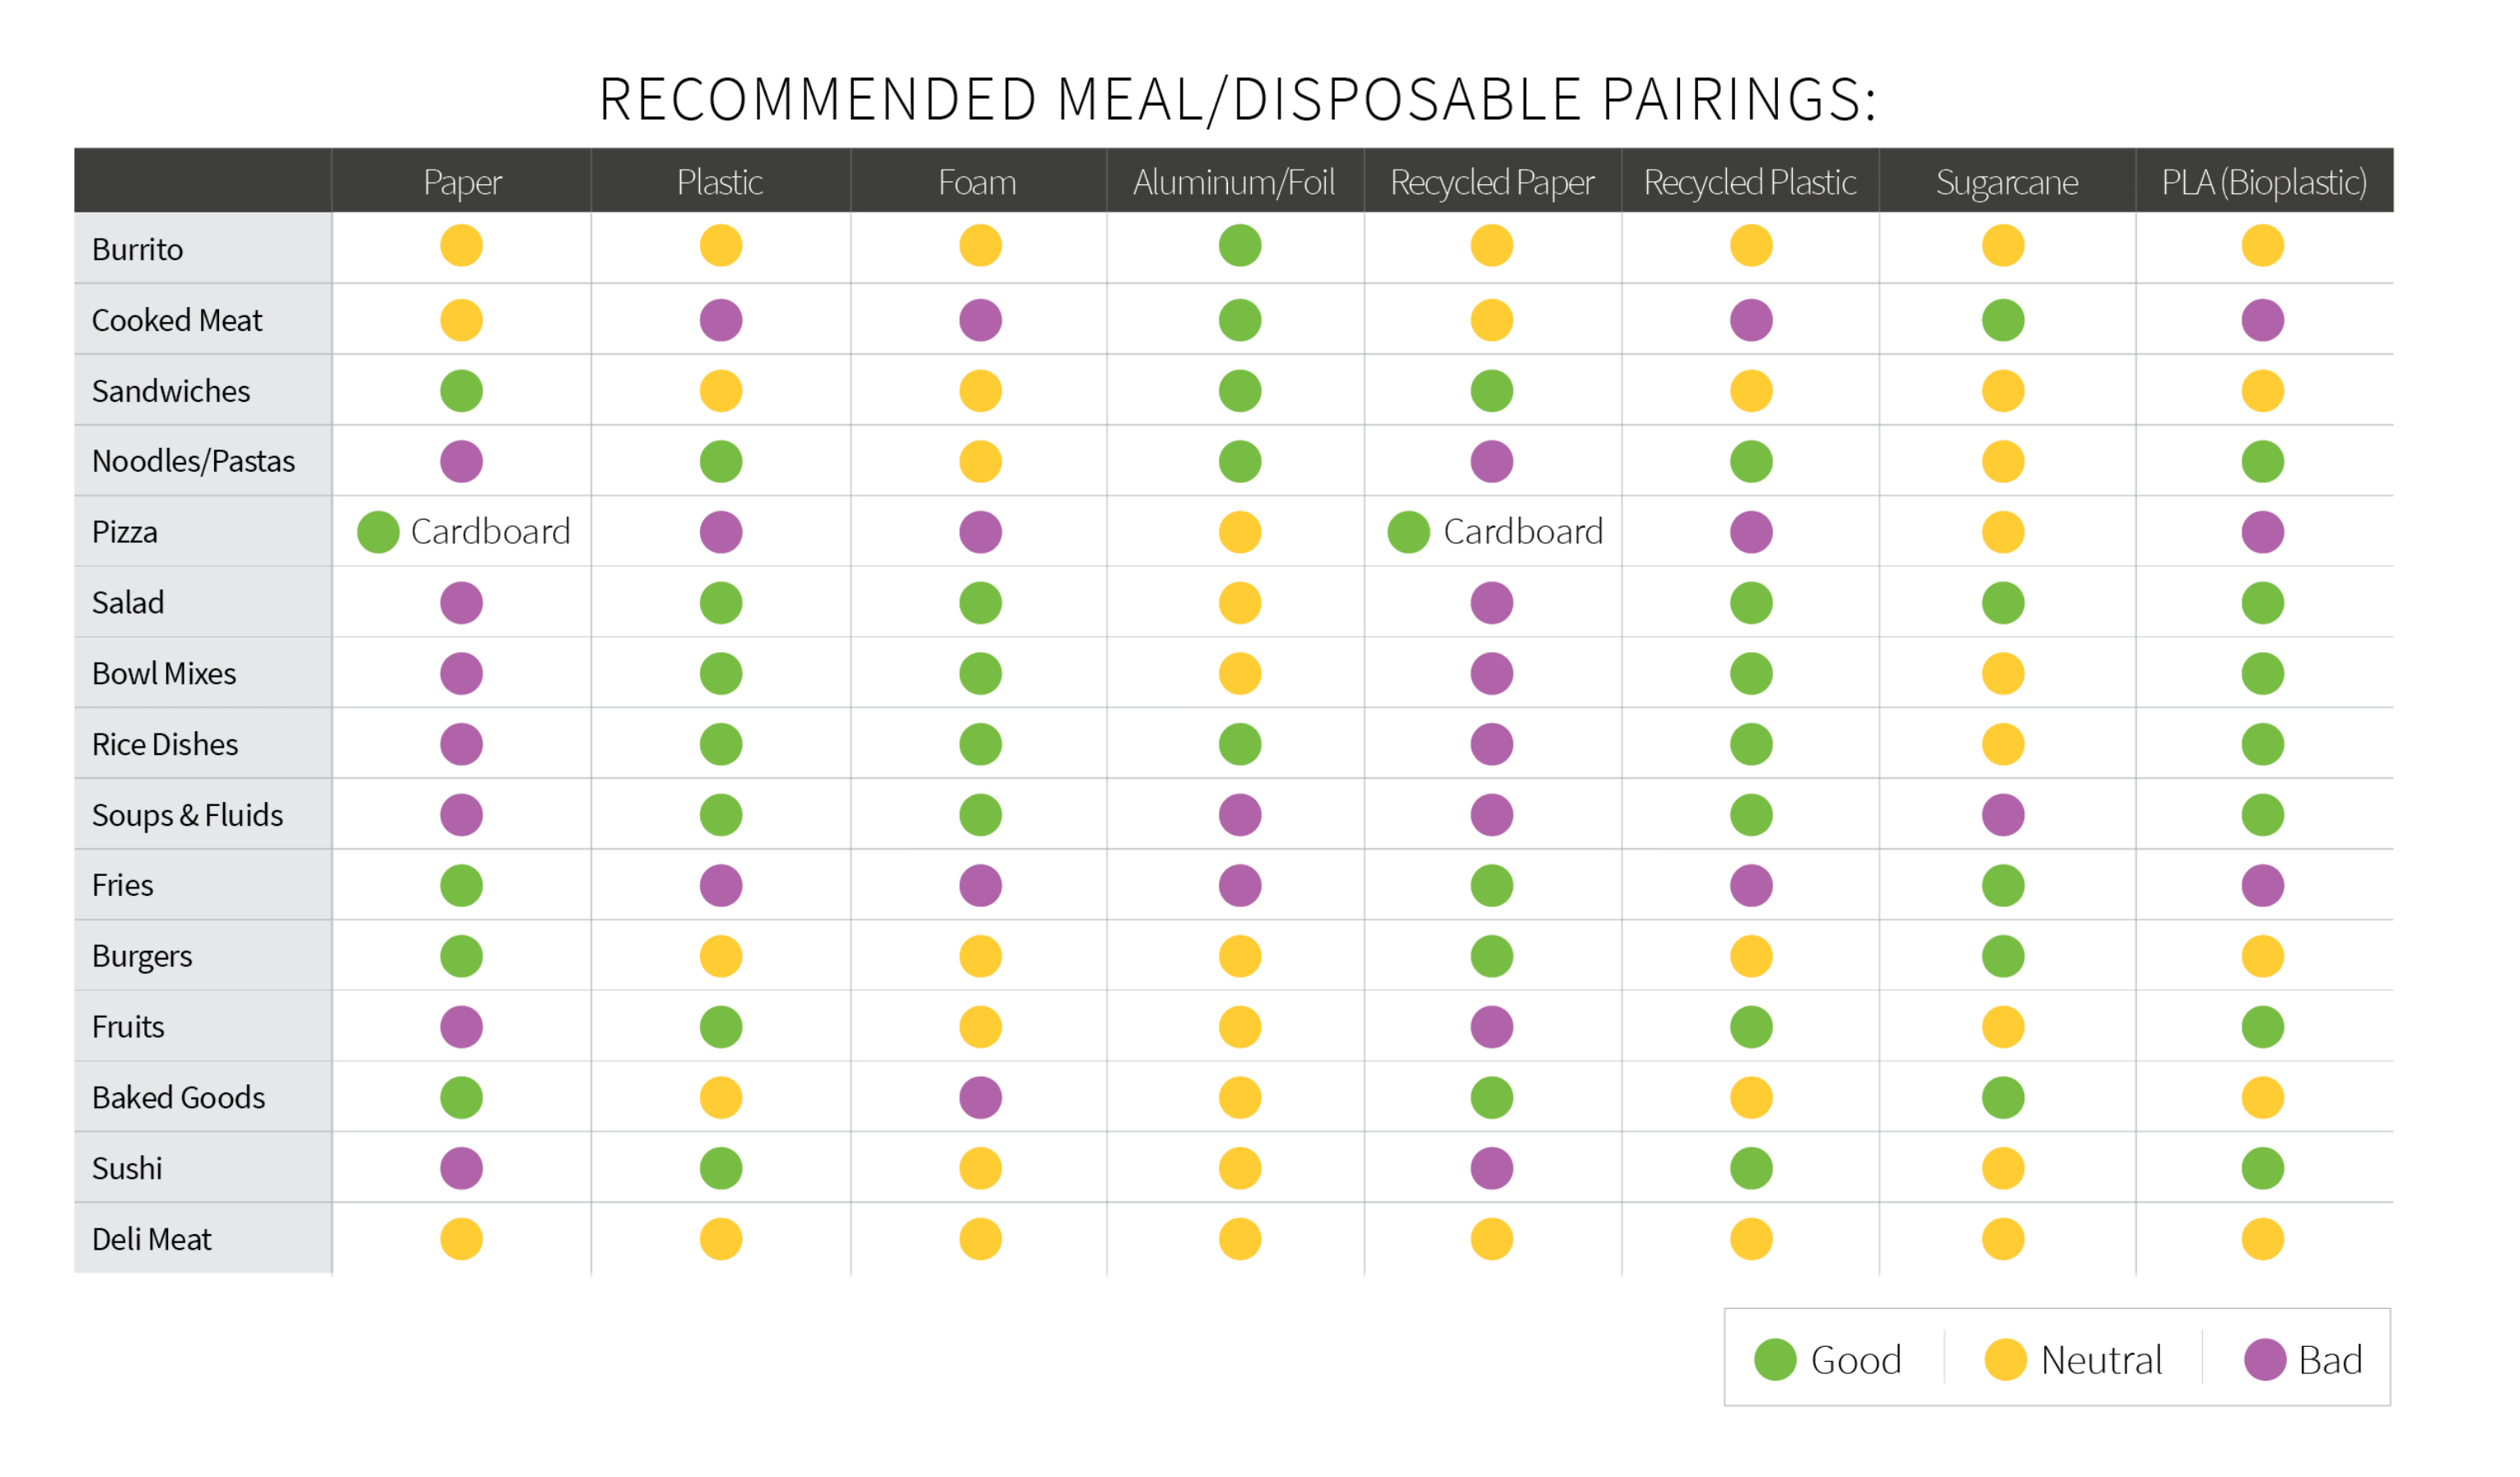 Recommended Meal/Disposable Pairings - Source: http://blog.etundra.com/in-the-restaurant/increase-sales-by-properly-packaging-to-go-meals/